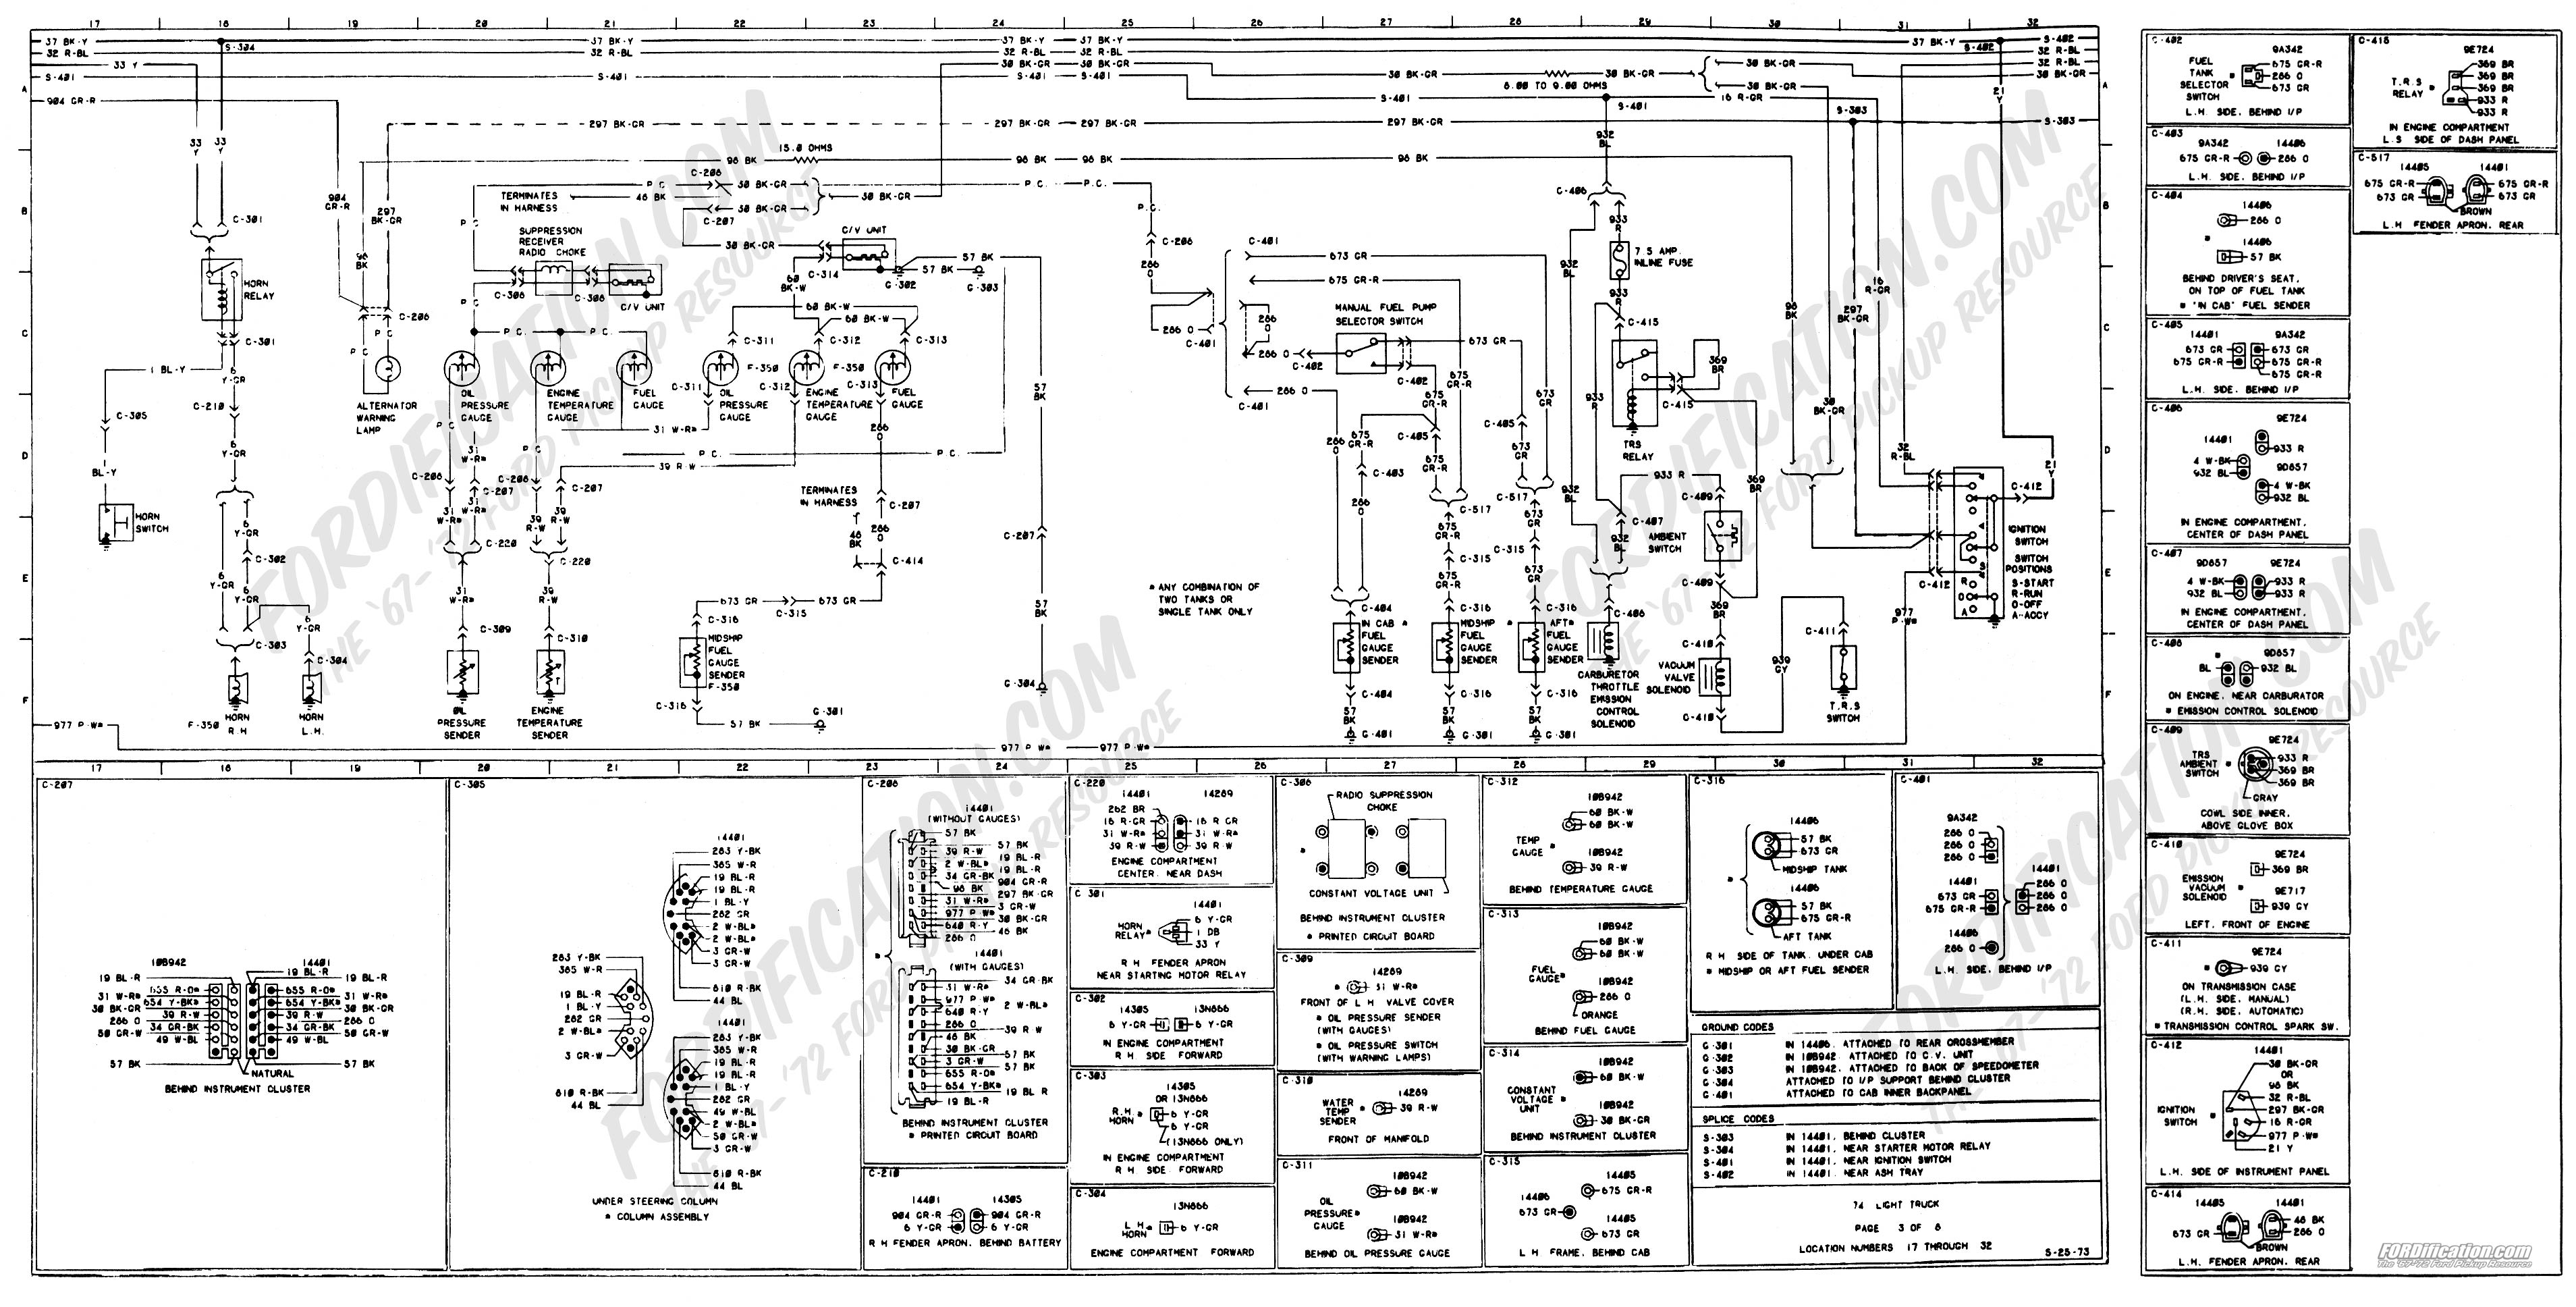 1973 1979 ford truck wiring diagrams schematics fordification net rh fordification net 1971 ford torino wiring diagram 1971 ford ranchero wiring diagram